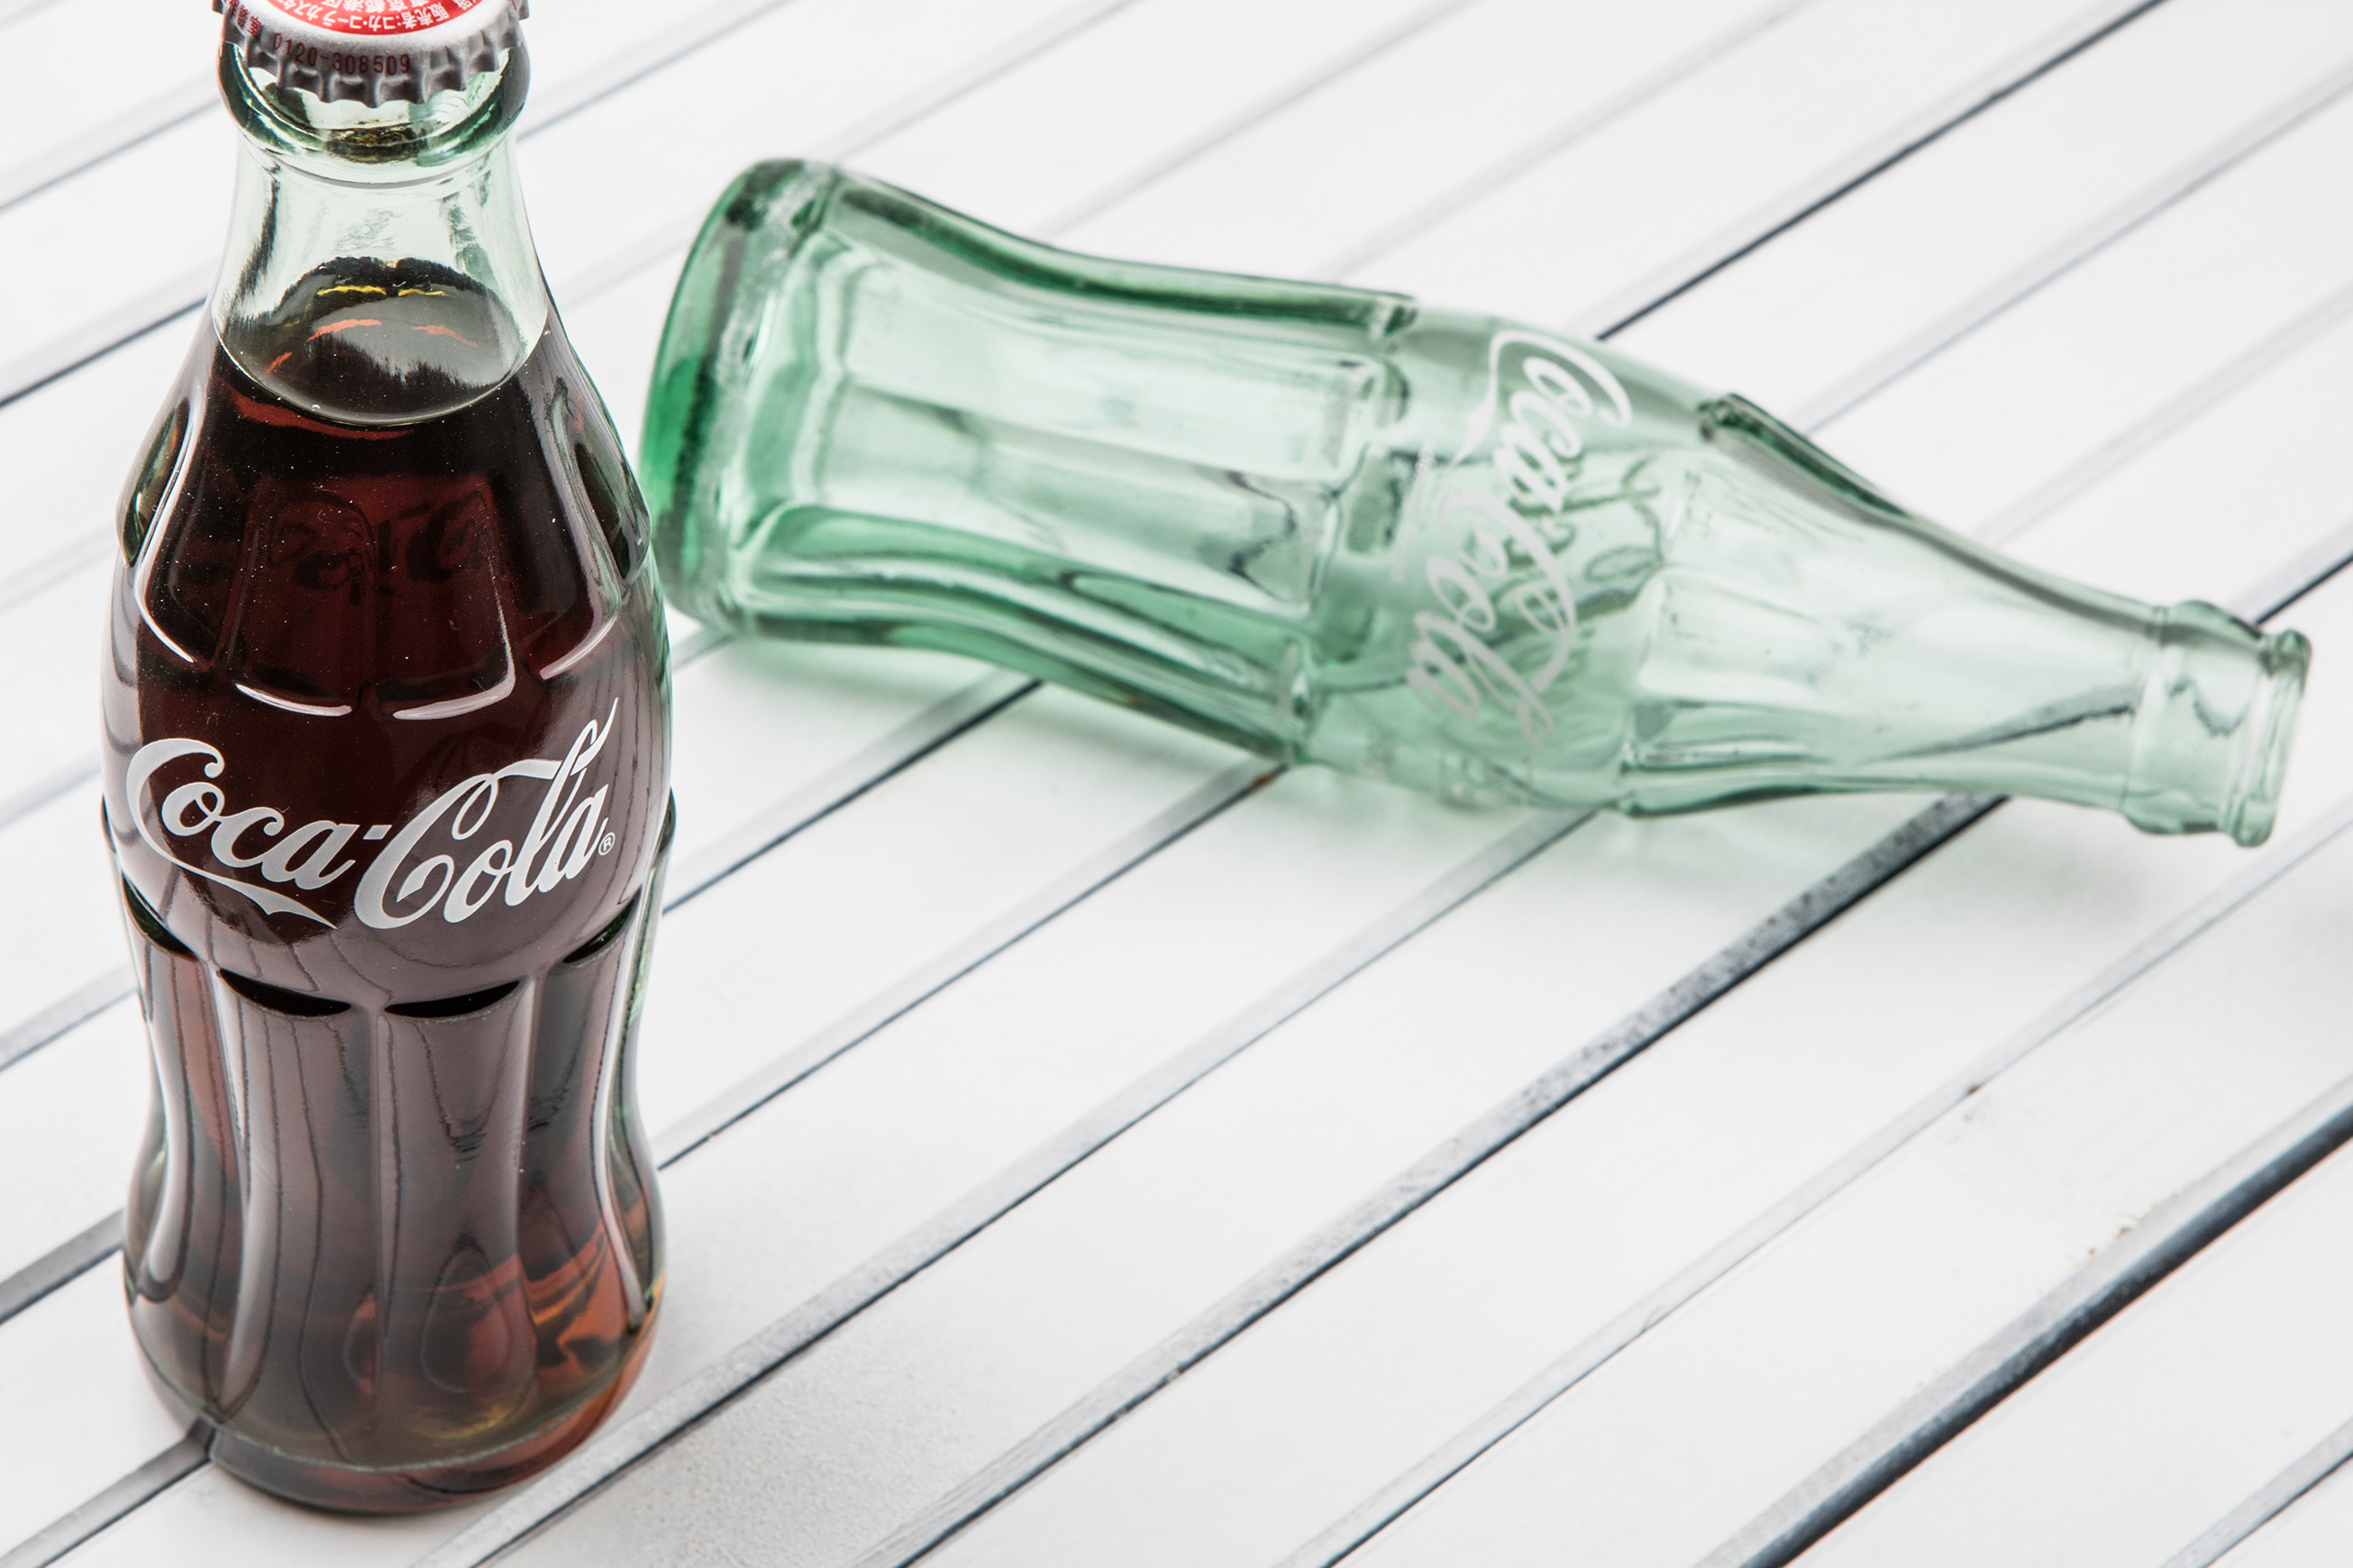 A full glass Coca-Cola bottle stands next to an empty green one.